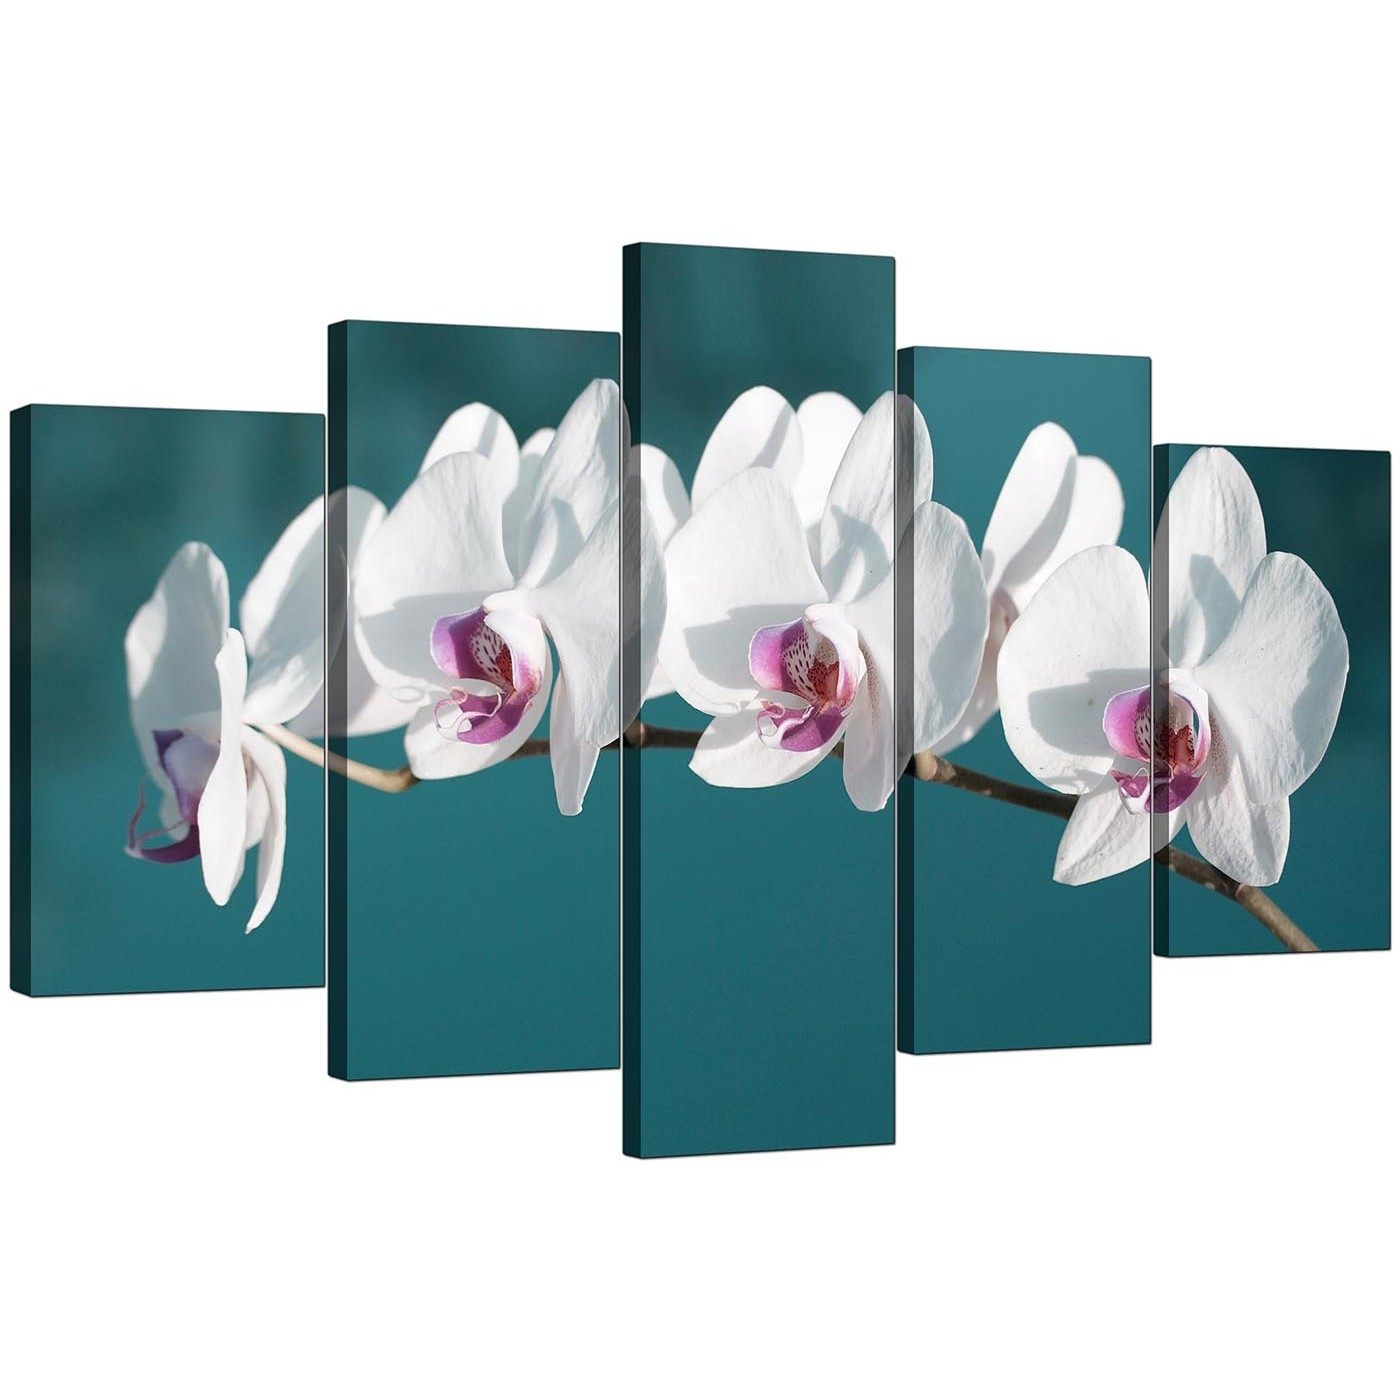 Extra Large Orchids Canvas Prints 5 Panel In Teal In Most Current Orchid Canvas Wall Art (View 6 of 15)